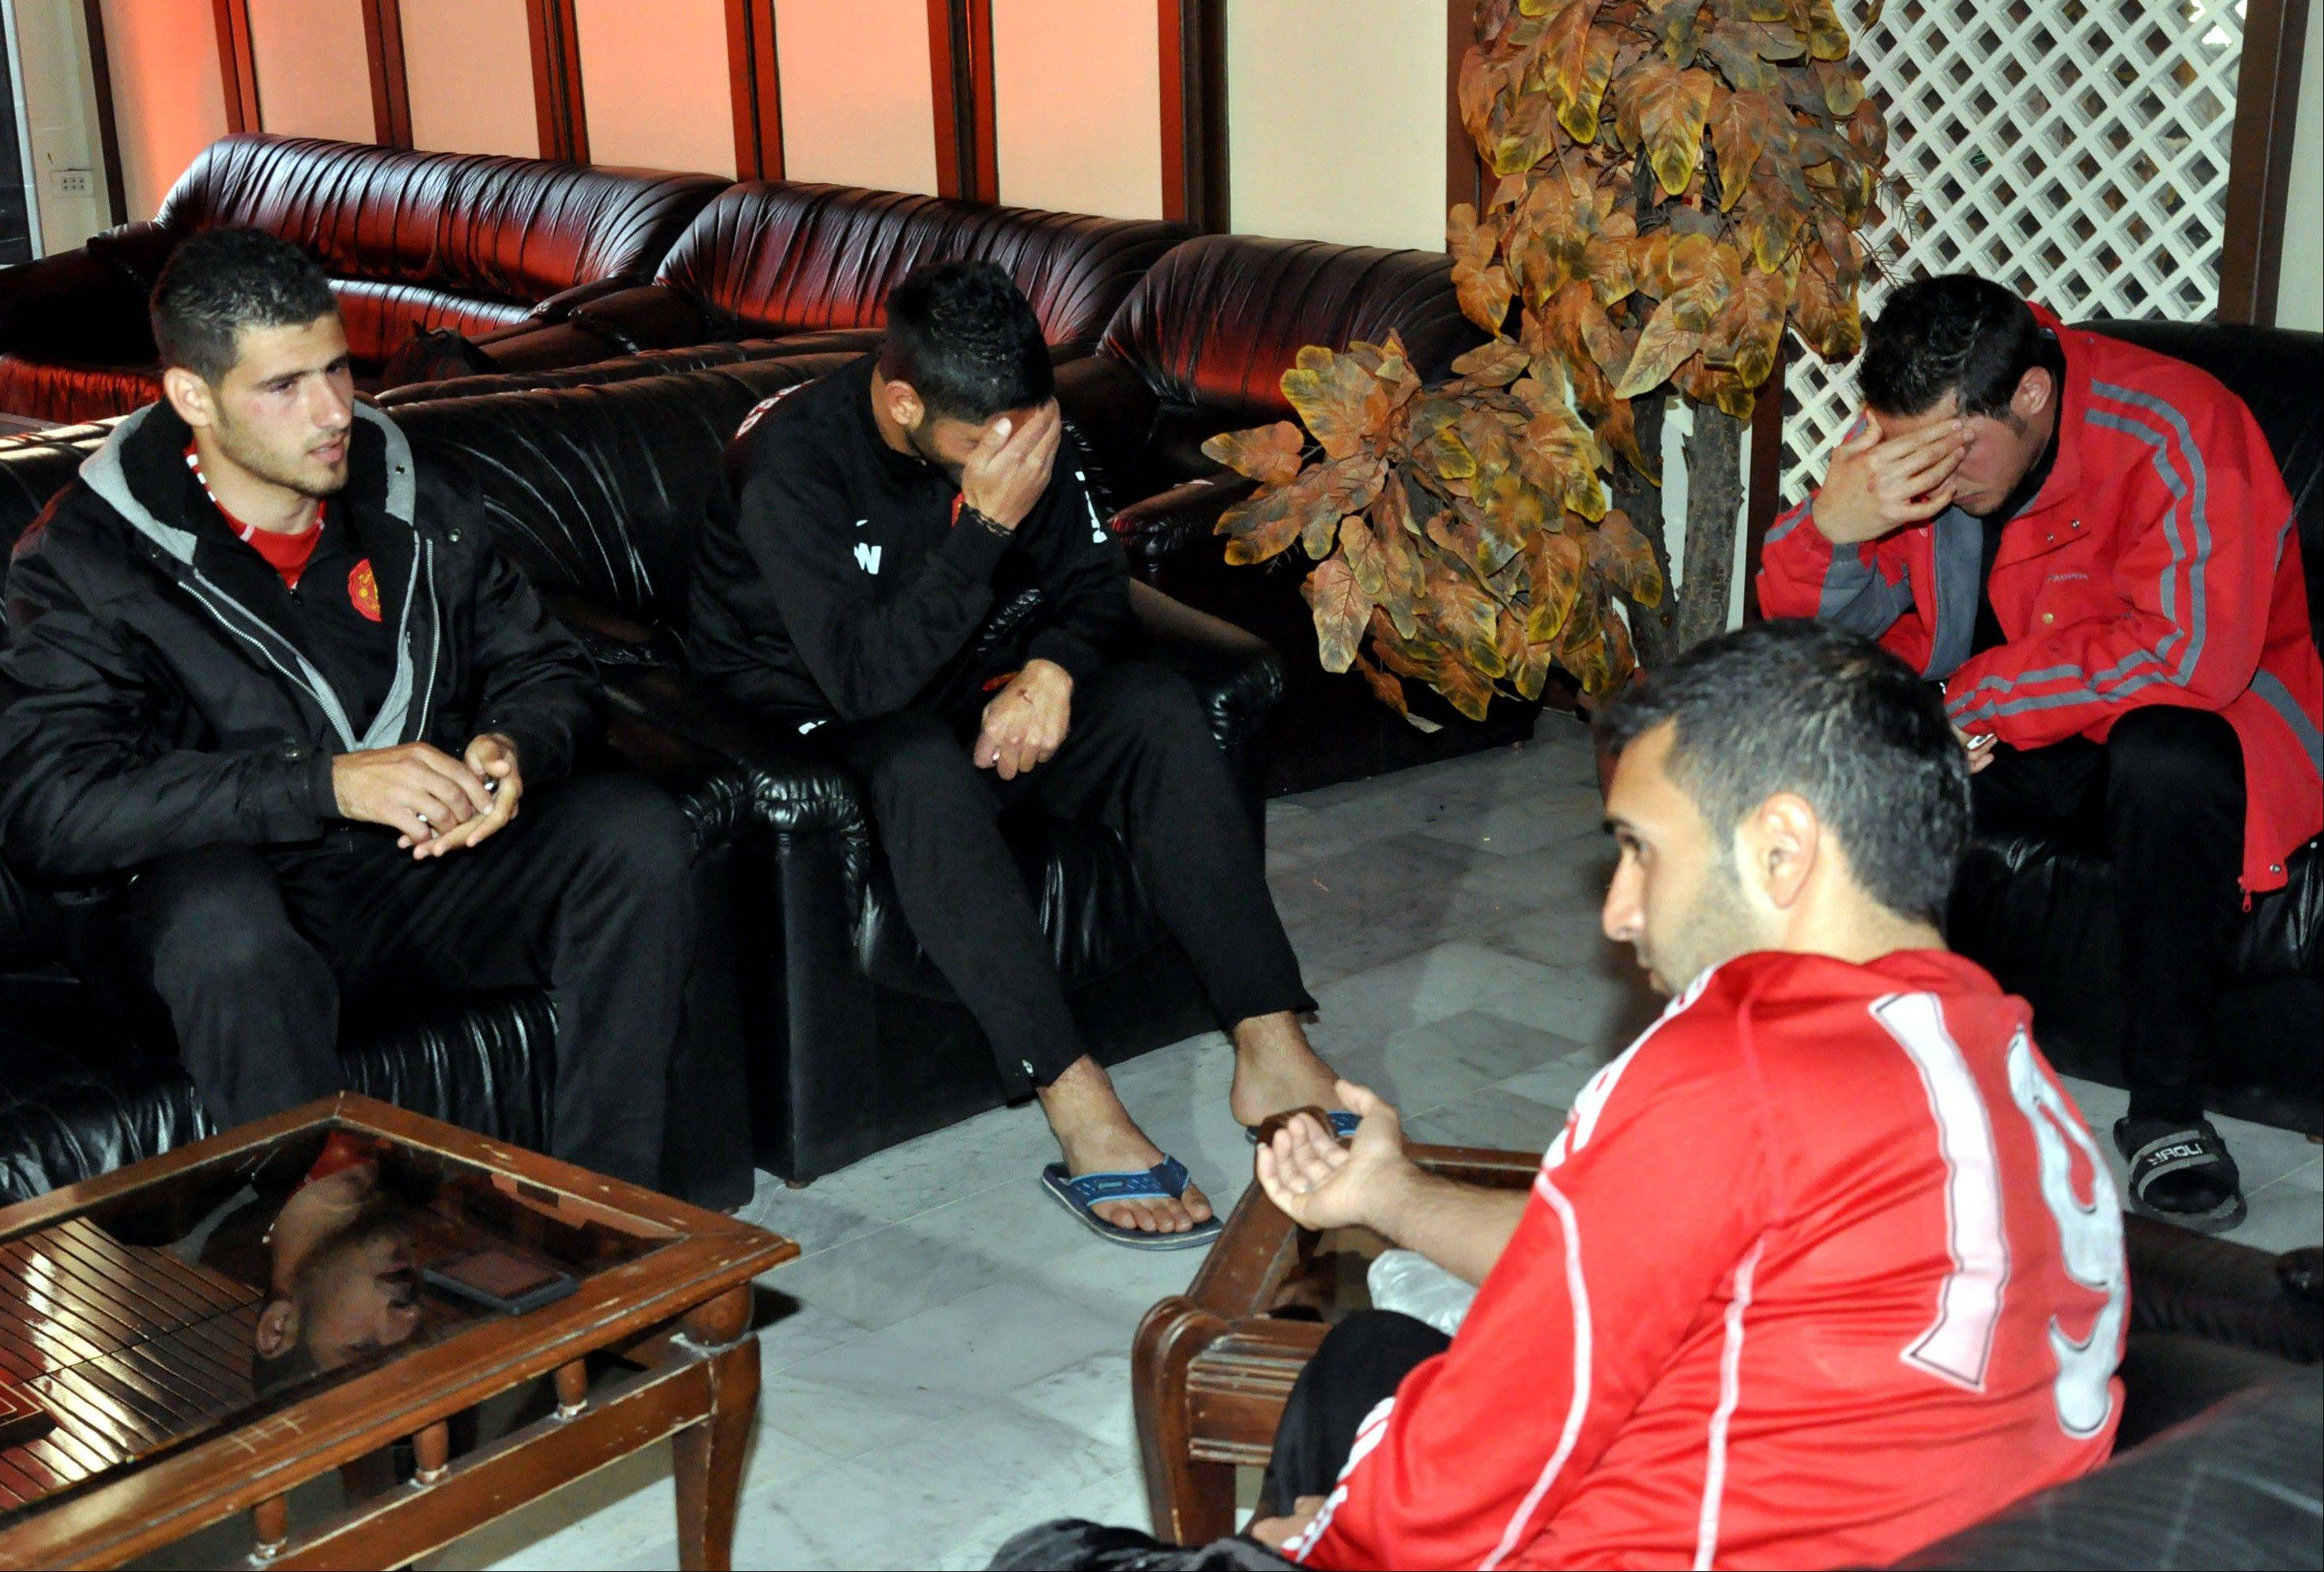 Players of the Homs-based al-Wathbah club react after two mortars exploded next to a soccer stadium in central Damascus, Syria, Wednesday, Feb. 20, 2013. Two mortars exploded killing one player and injuring several, Syria�s state-run news agency said.